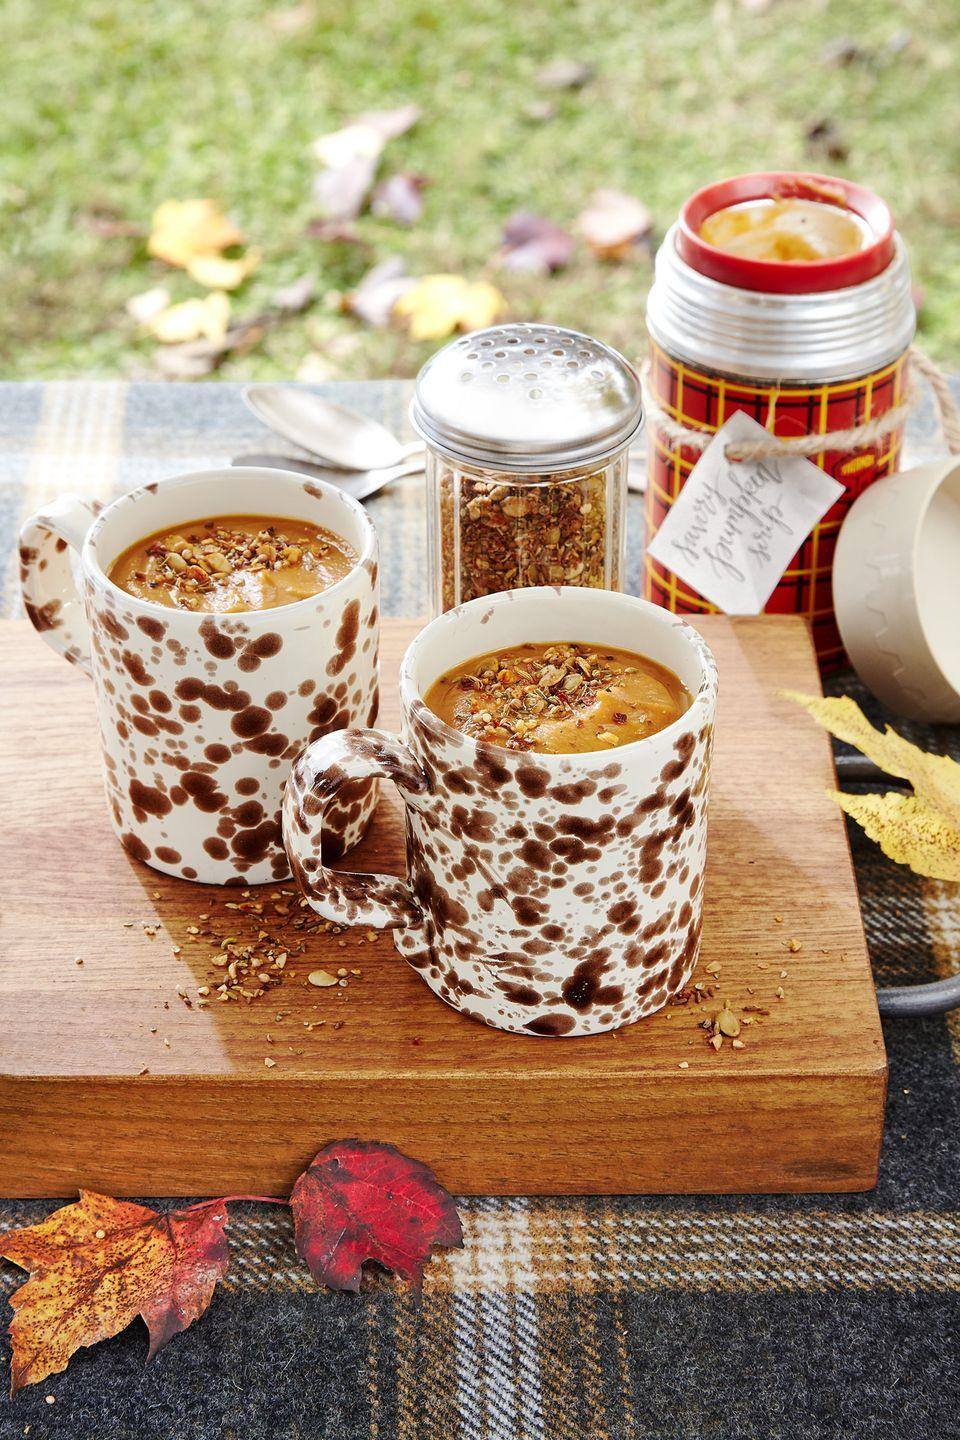 """<p>Warm guests up with a comforting cup of soup that's creamy, yet contains not a drop of cream.</p><p><strong><a href=""""https://www.countryliving.com/food-drinks/a24234364/savory-pumpkin-soup-with-spice-shake-recipe/"""" rel=""""nofollow noopener"""" target=""""_blank"""" data-ylk=""""slk:Get the recipe"""" class=""""link rapid-noclick-resp"""">Get the recipe</a>.</strong> </p>"""